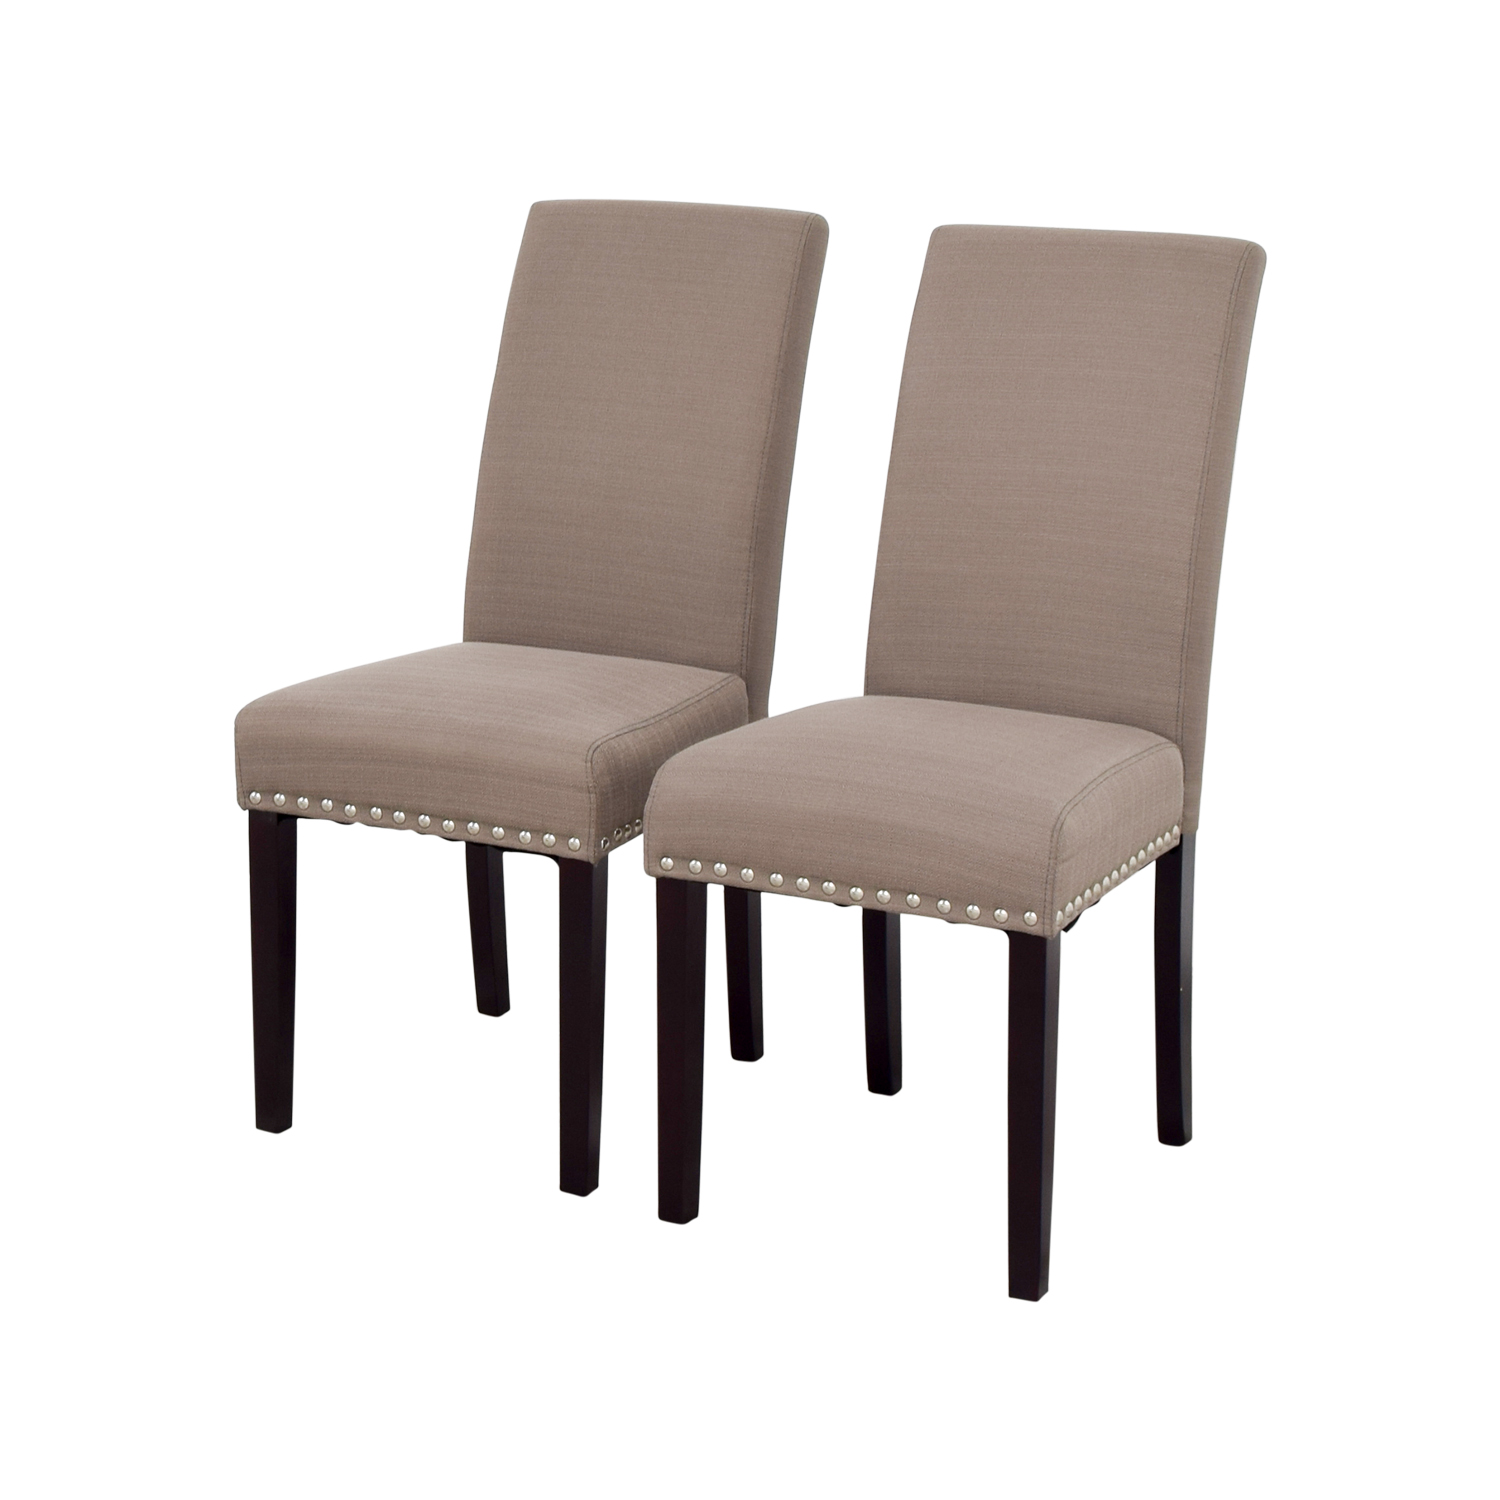 68 off modway modway madrid nail head dining chairs for Dining room head chairs